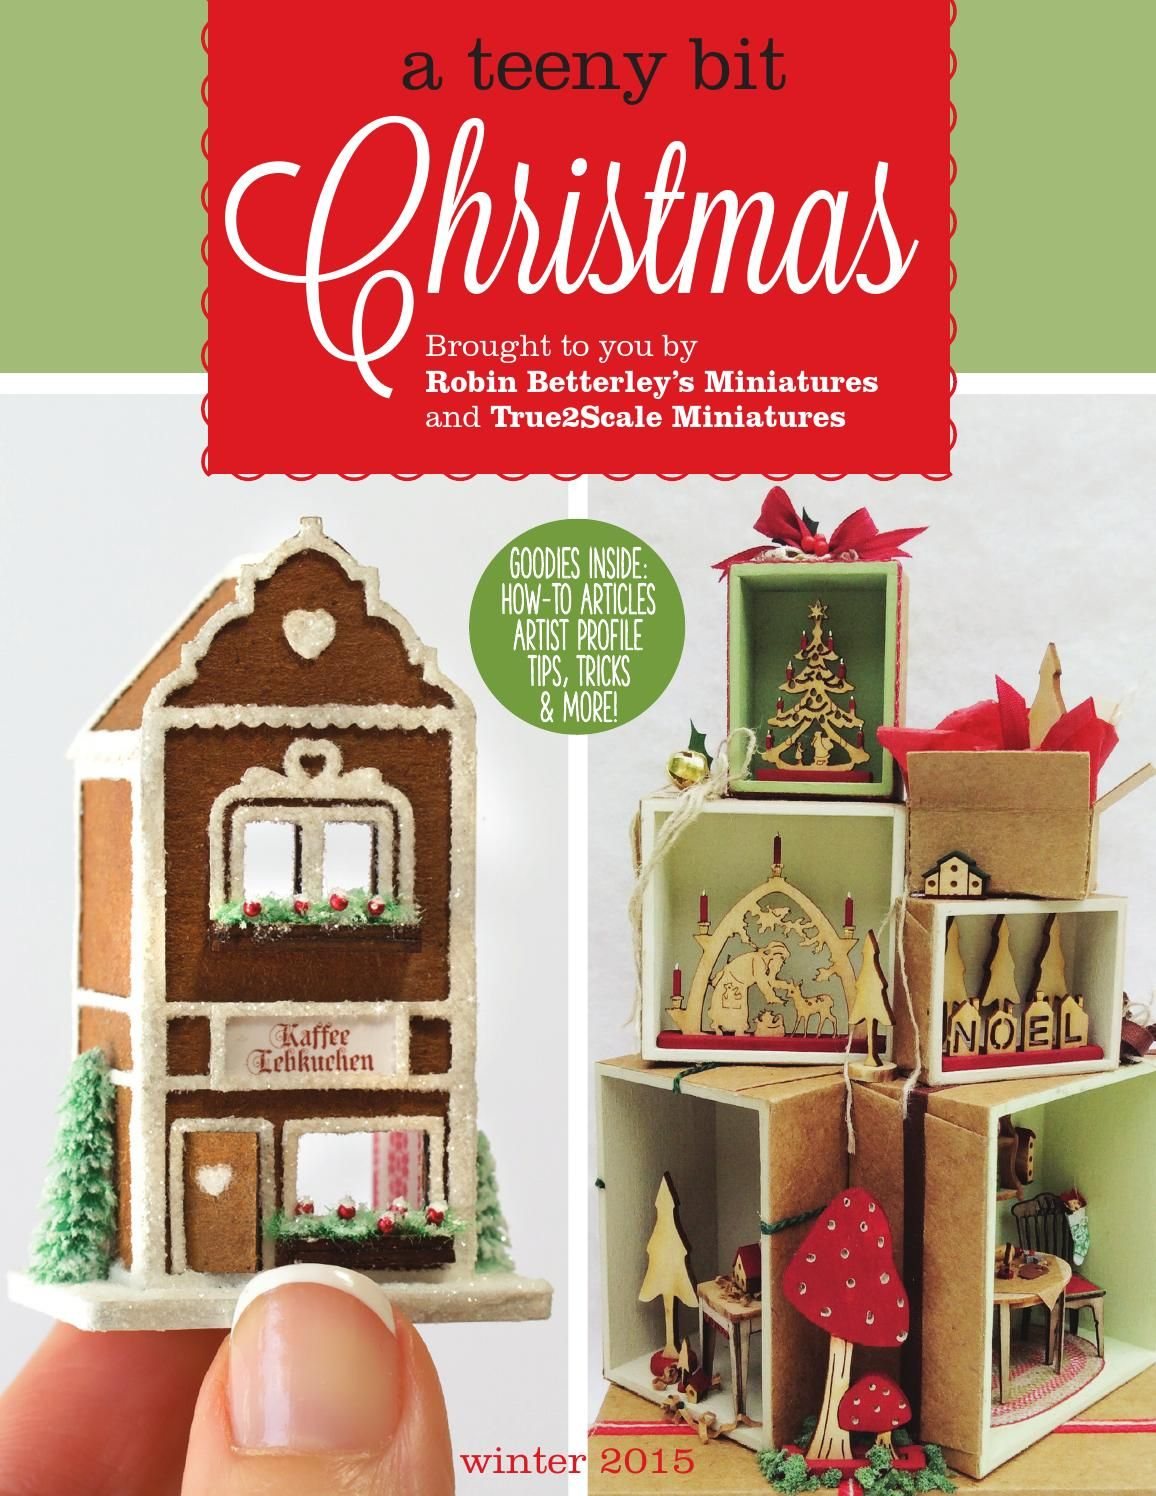 Devoted to dollhouse miniatures. Includes: tutorials, artist profile, tips, tricks & more. Brought to you by Robin Betterley's Miniatures & True2Scale.